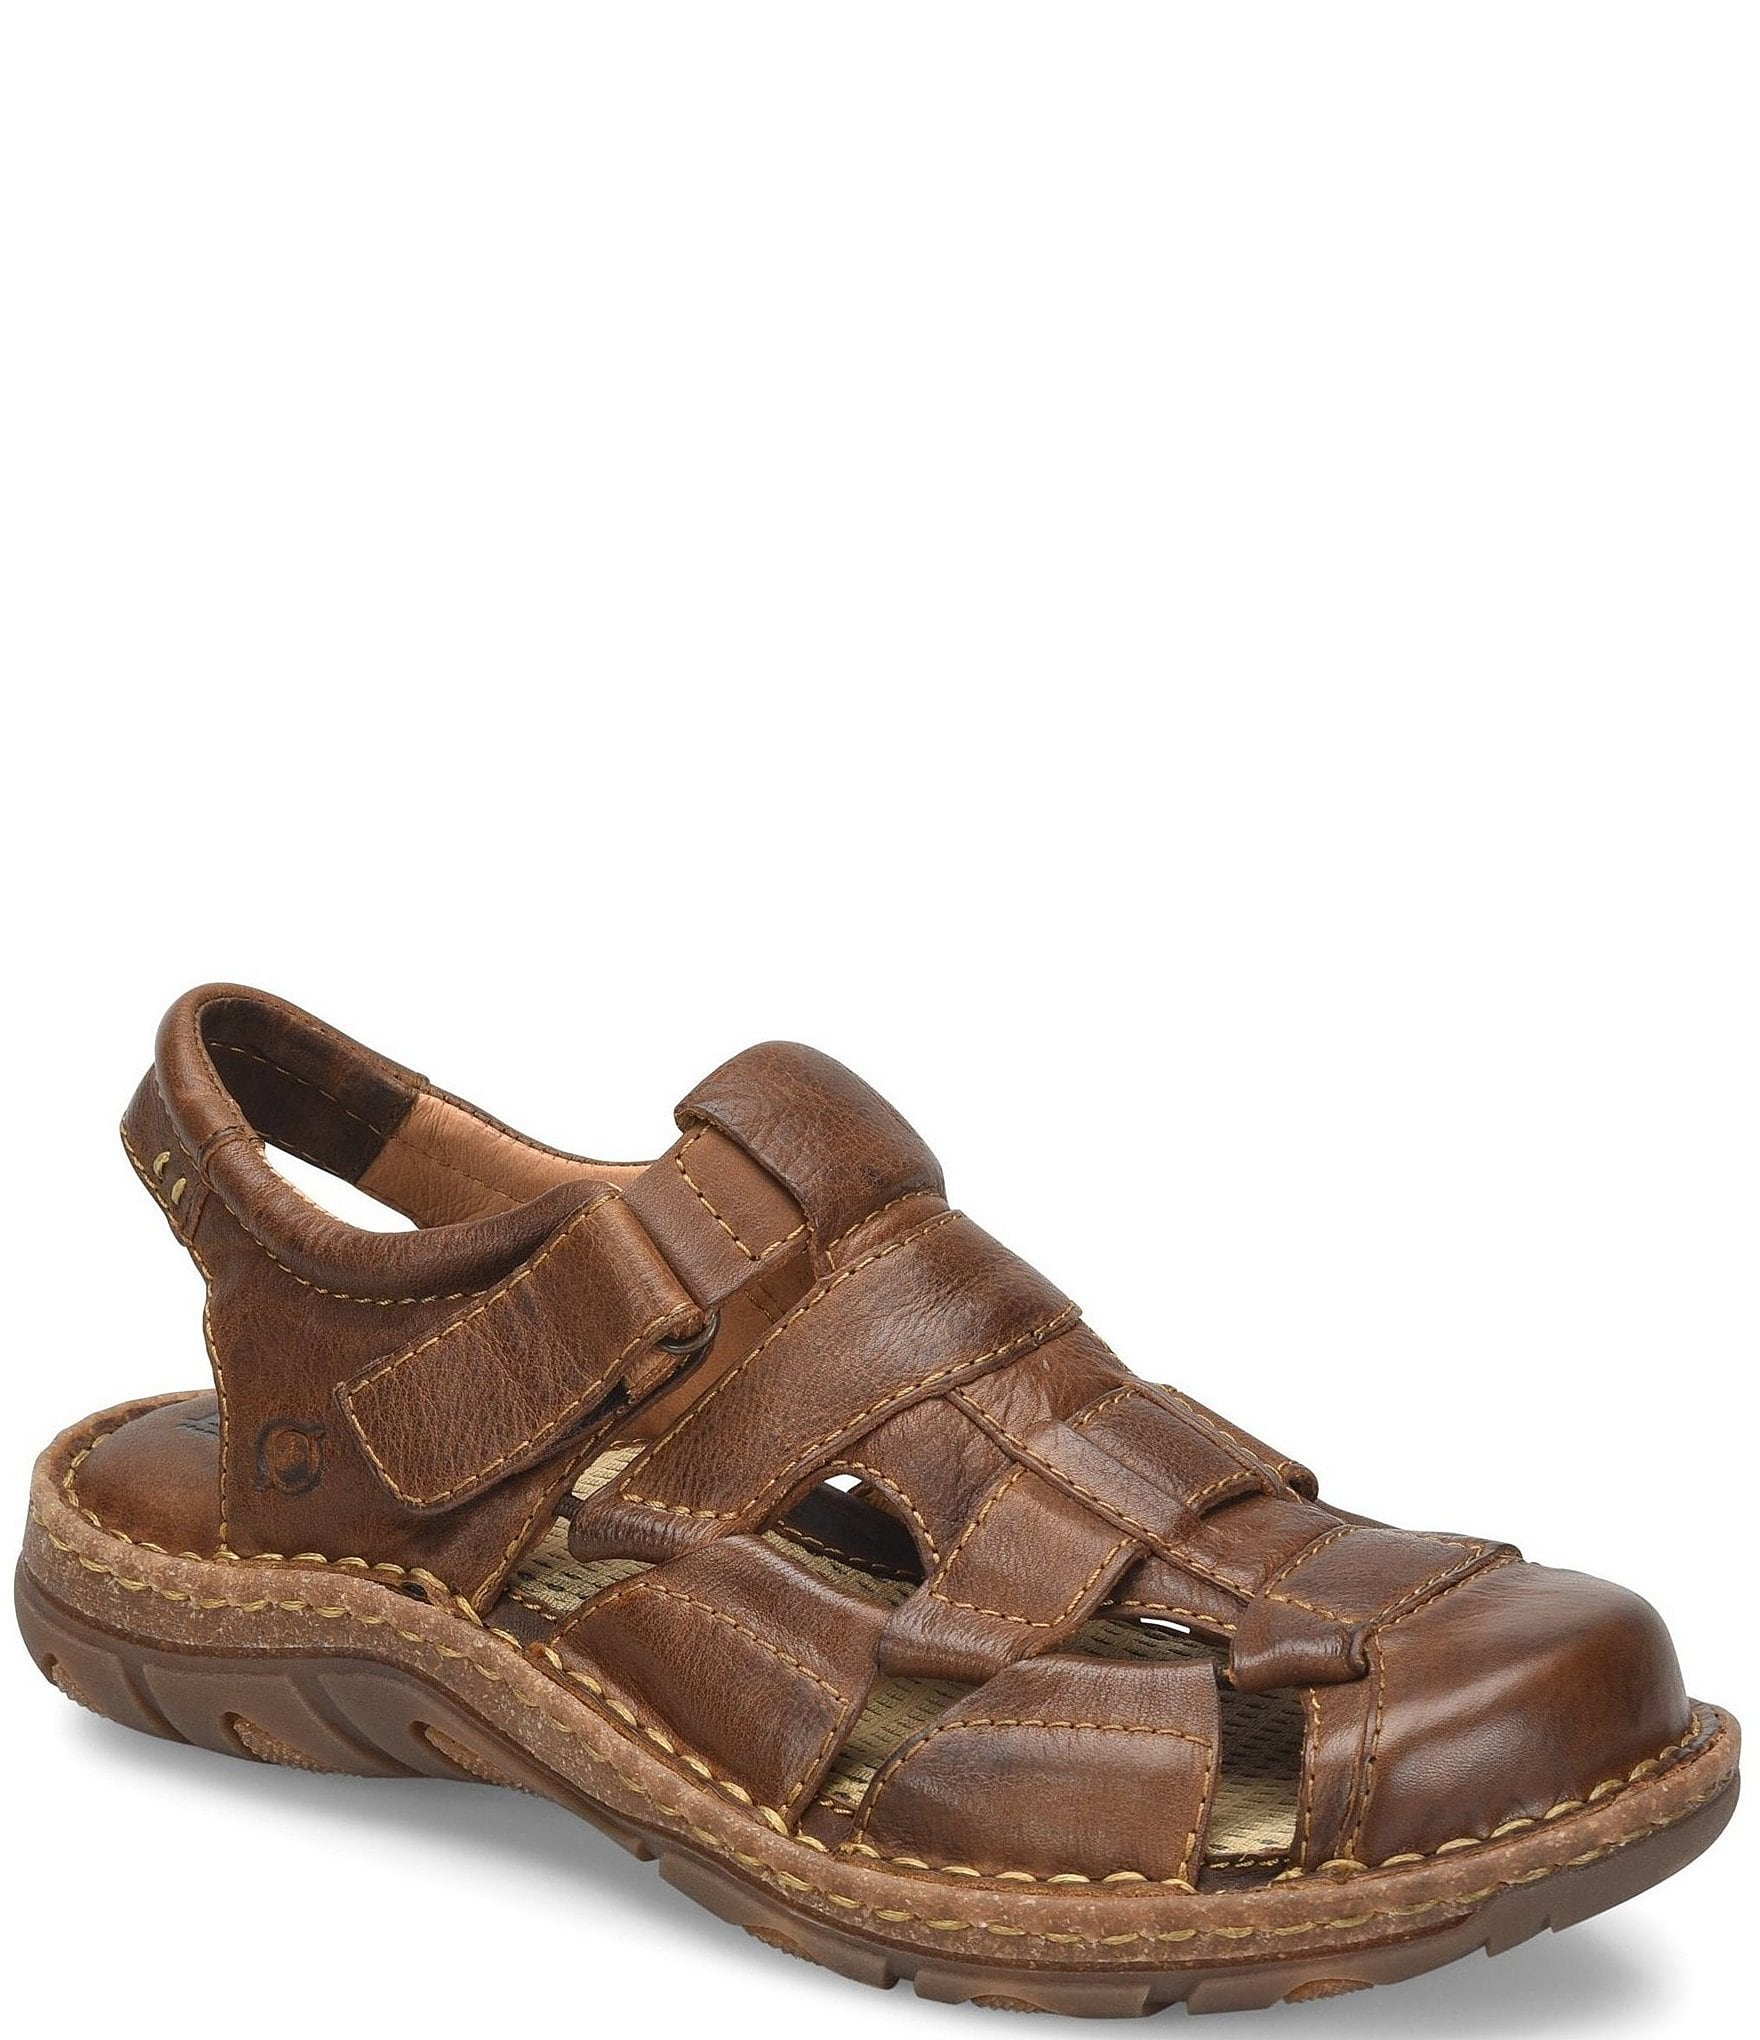 316f25207f41 Brown Men s Sandals